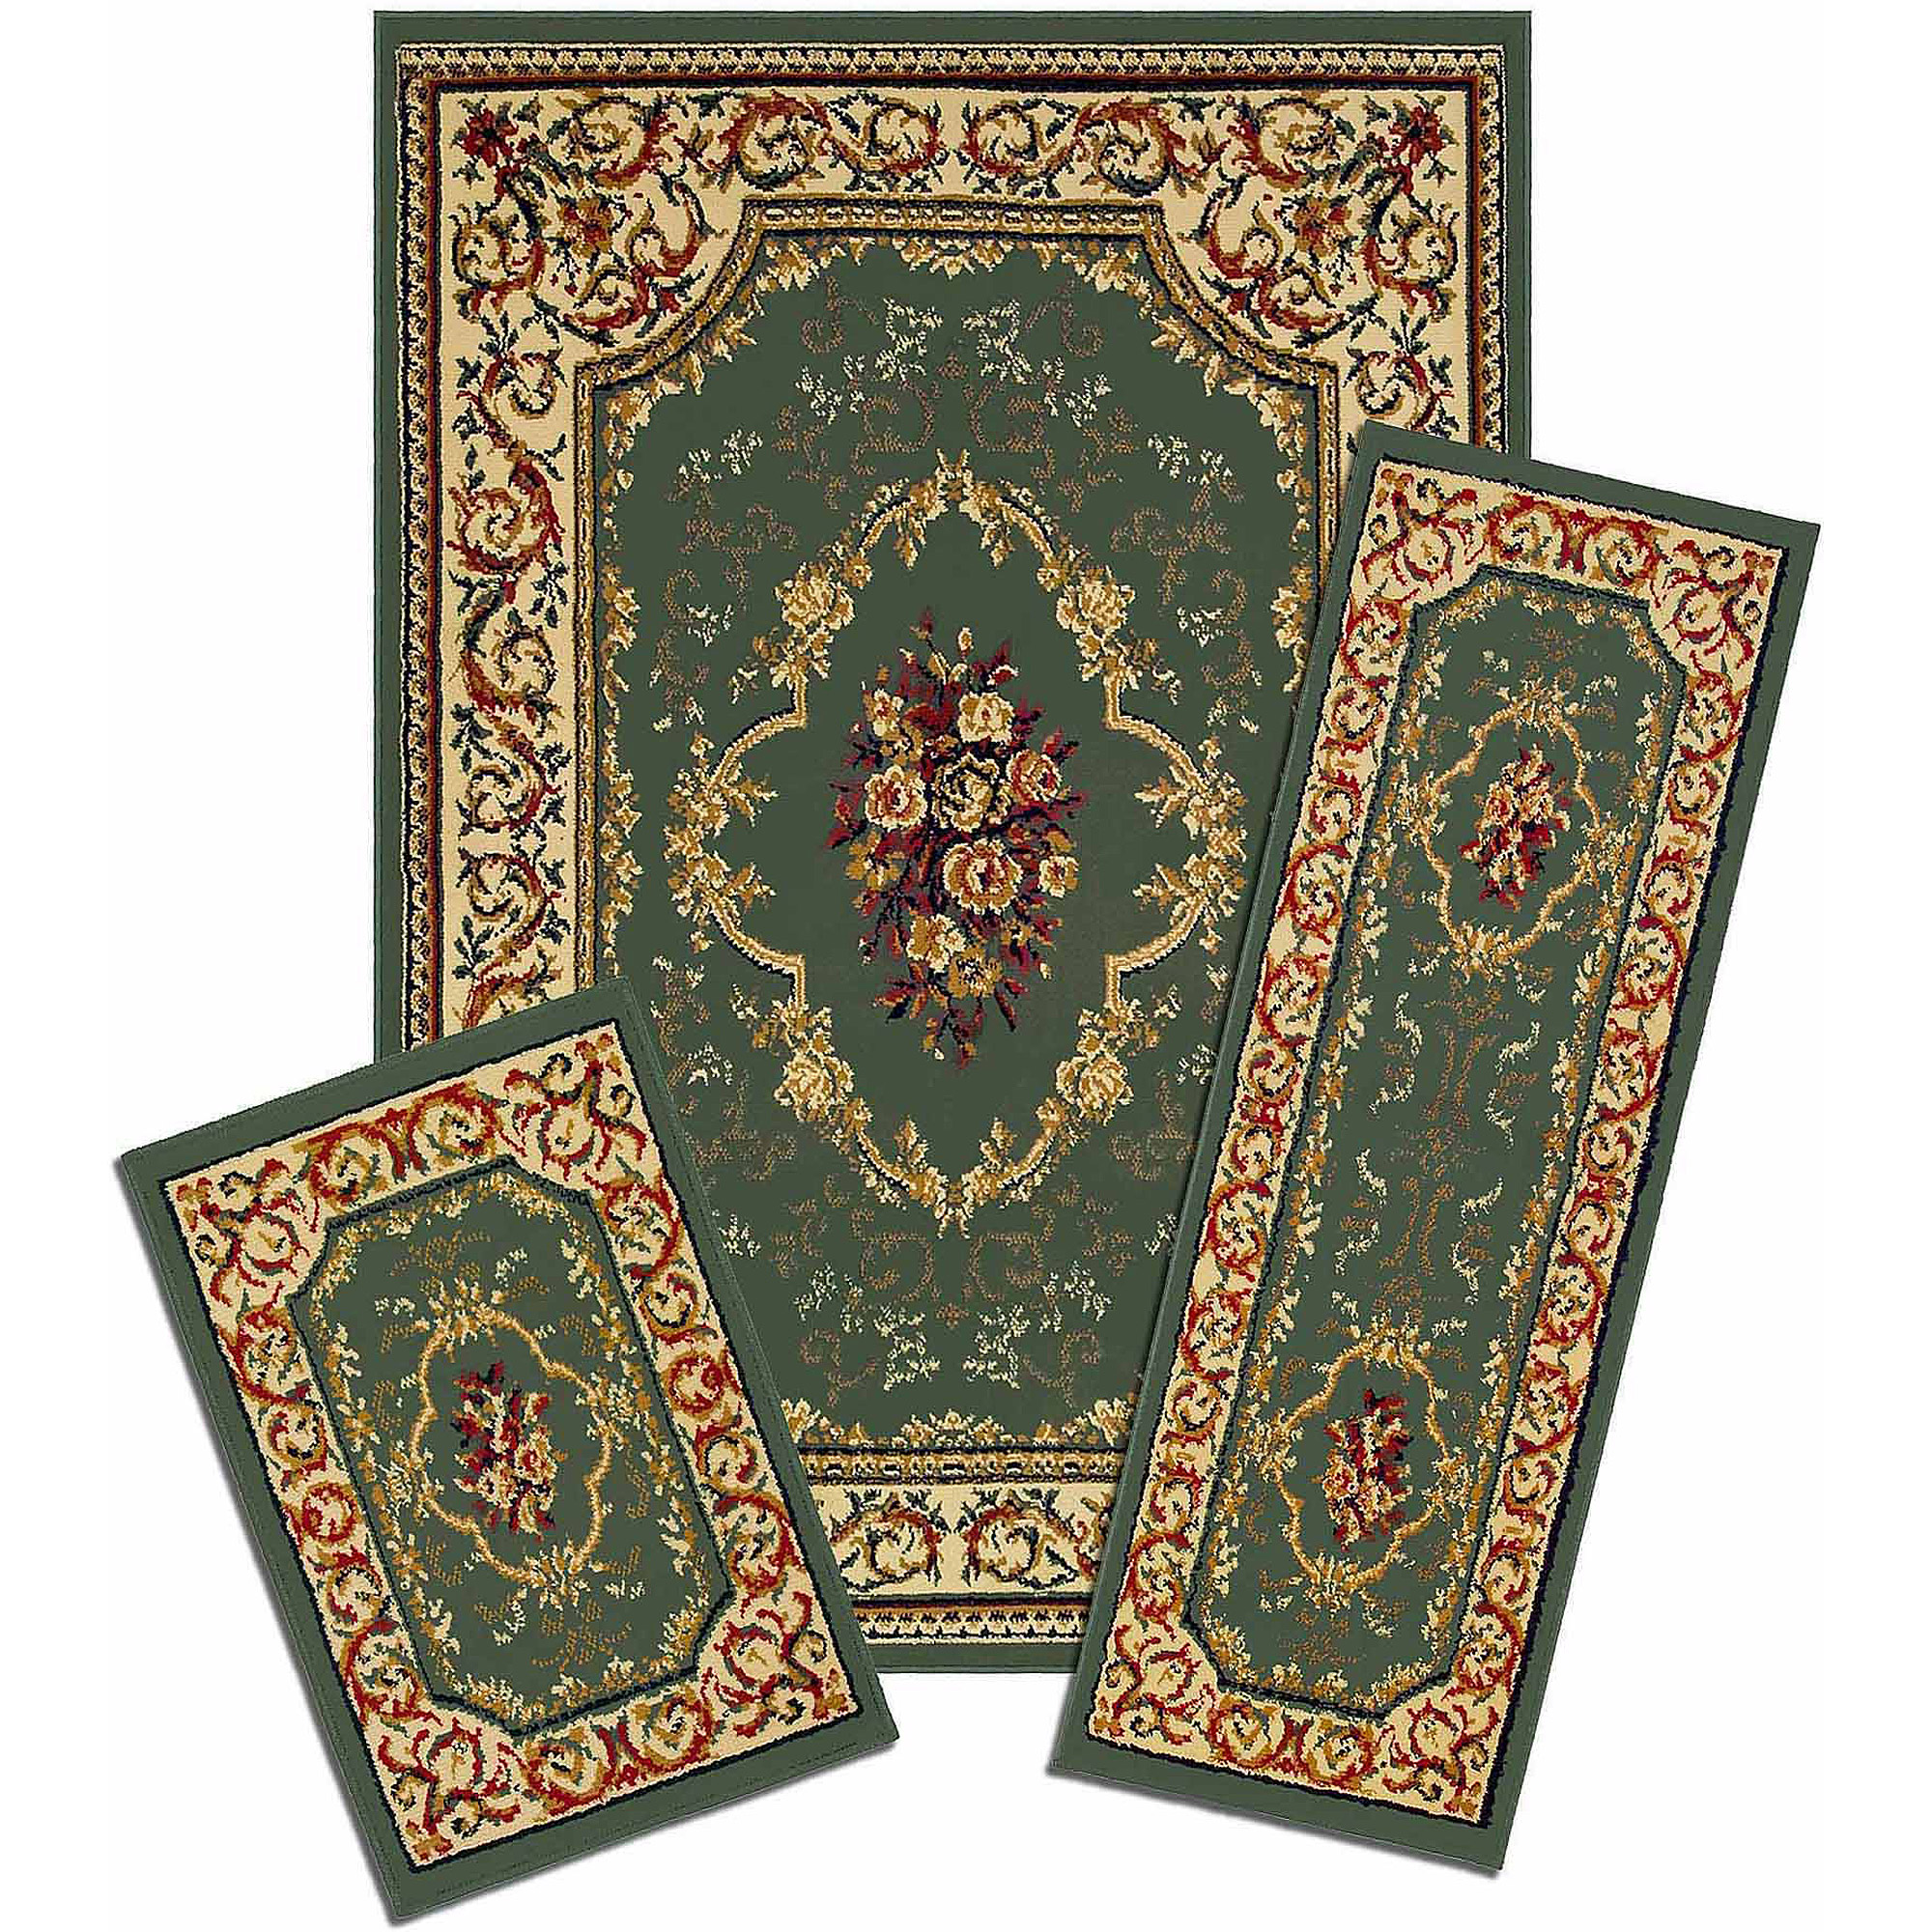 Capri 3 Piece Rug Set, Rose Garden